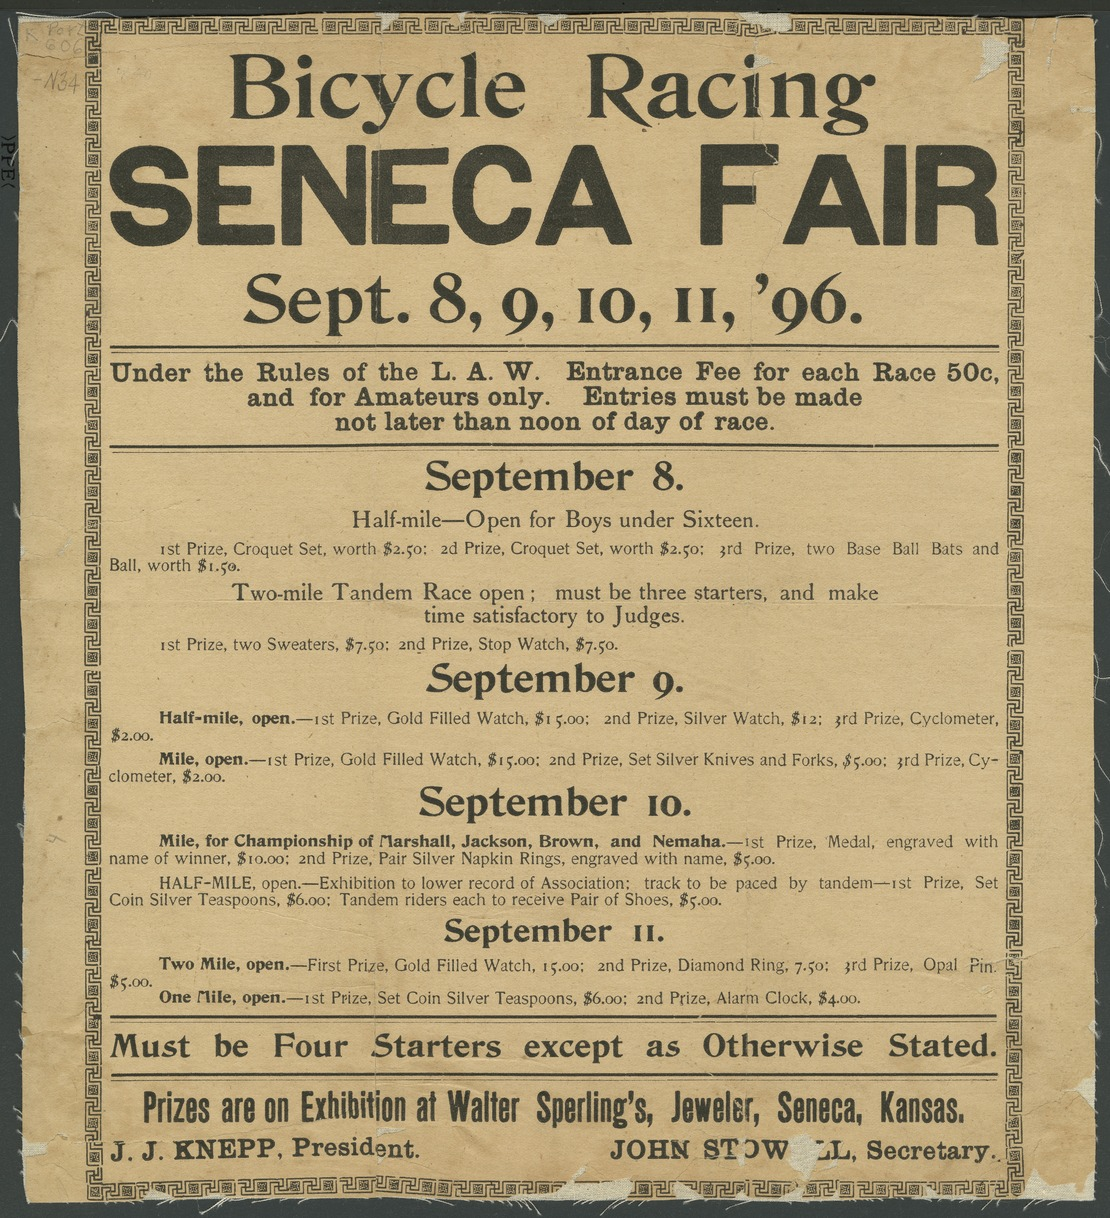 Bicycle racing. Seneca fair